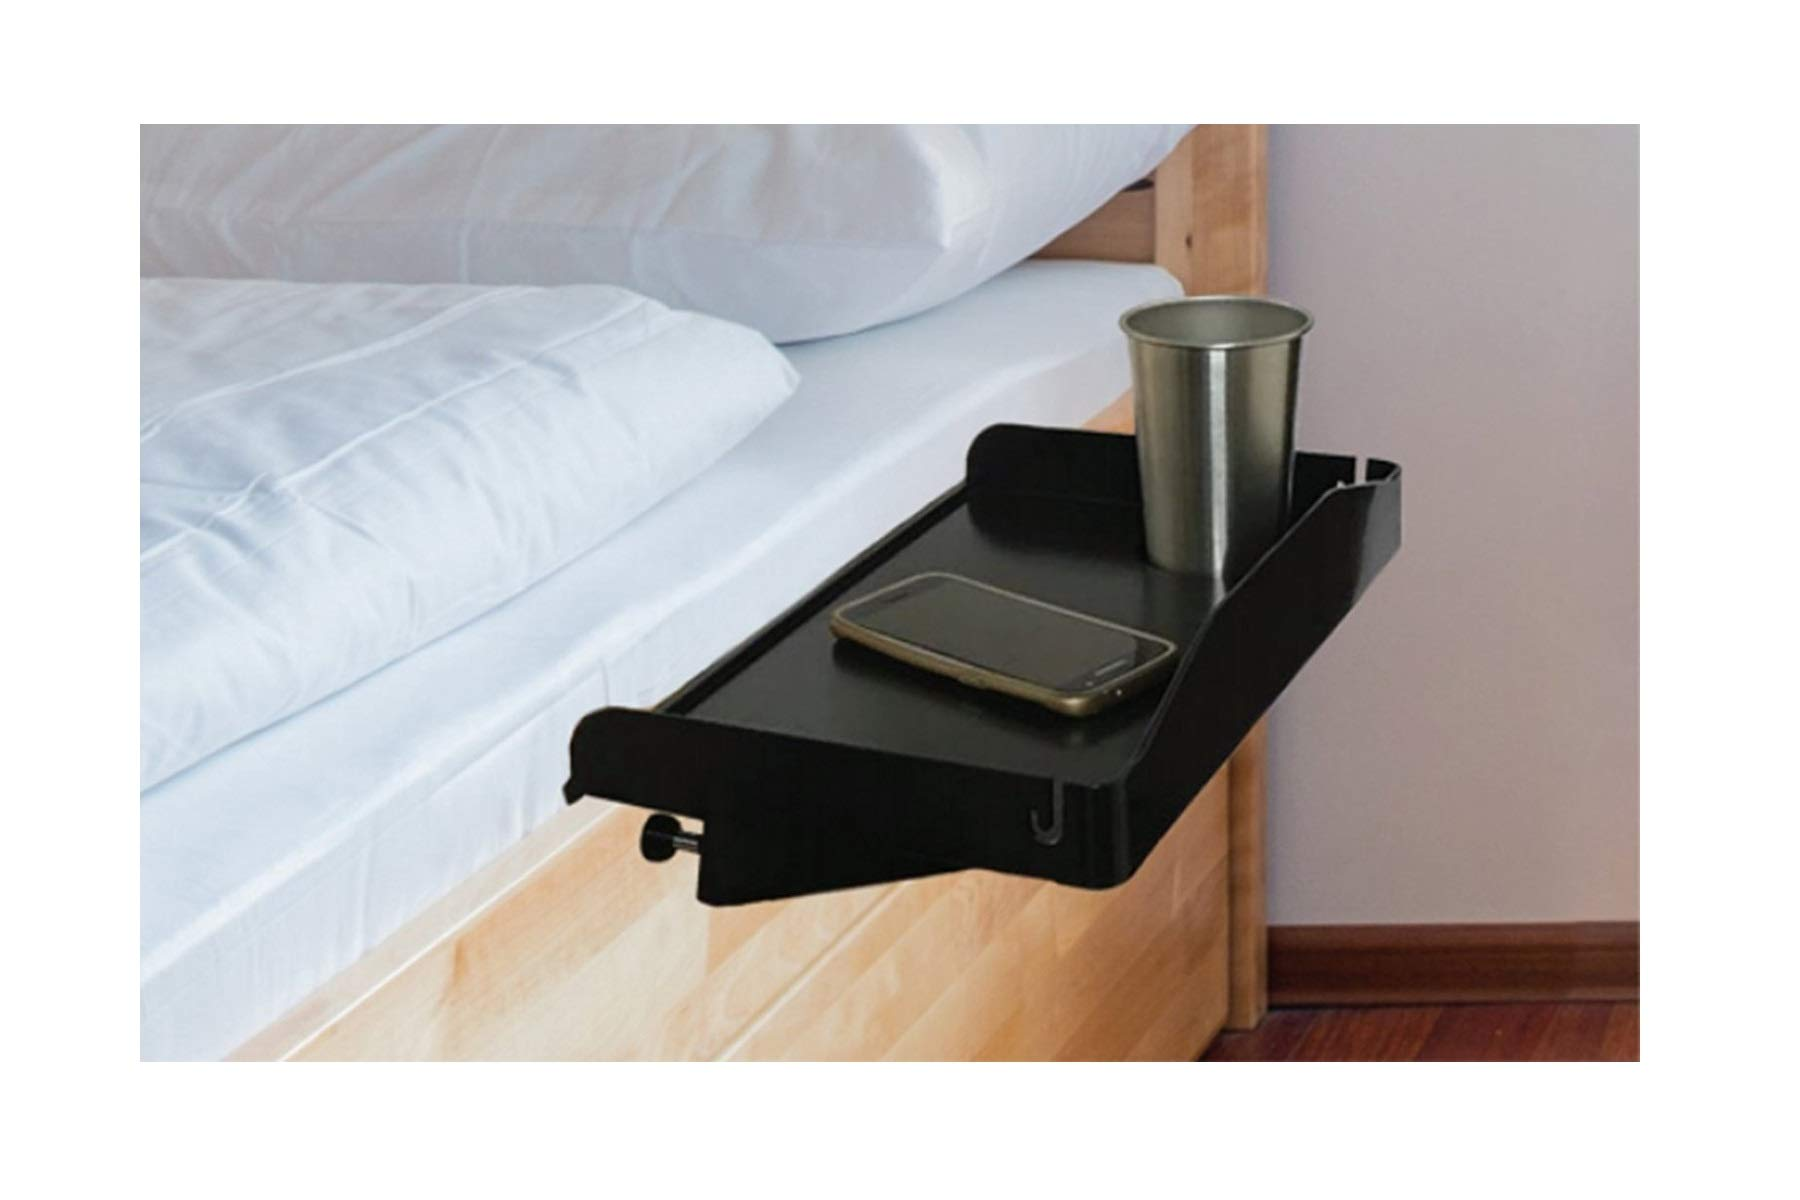 Bedside Shelf to Use As Kids Nightstand, Bunk Bed Nightstand, Dorm Room Nightstand for Students and Bedside Tray for Drink, Laptop, Tablet, Books, Remote, Alarm Clock & Phone - Plastic (Black)